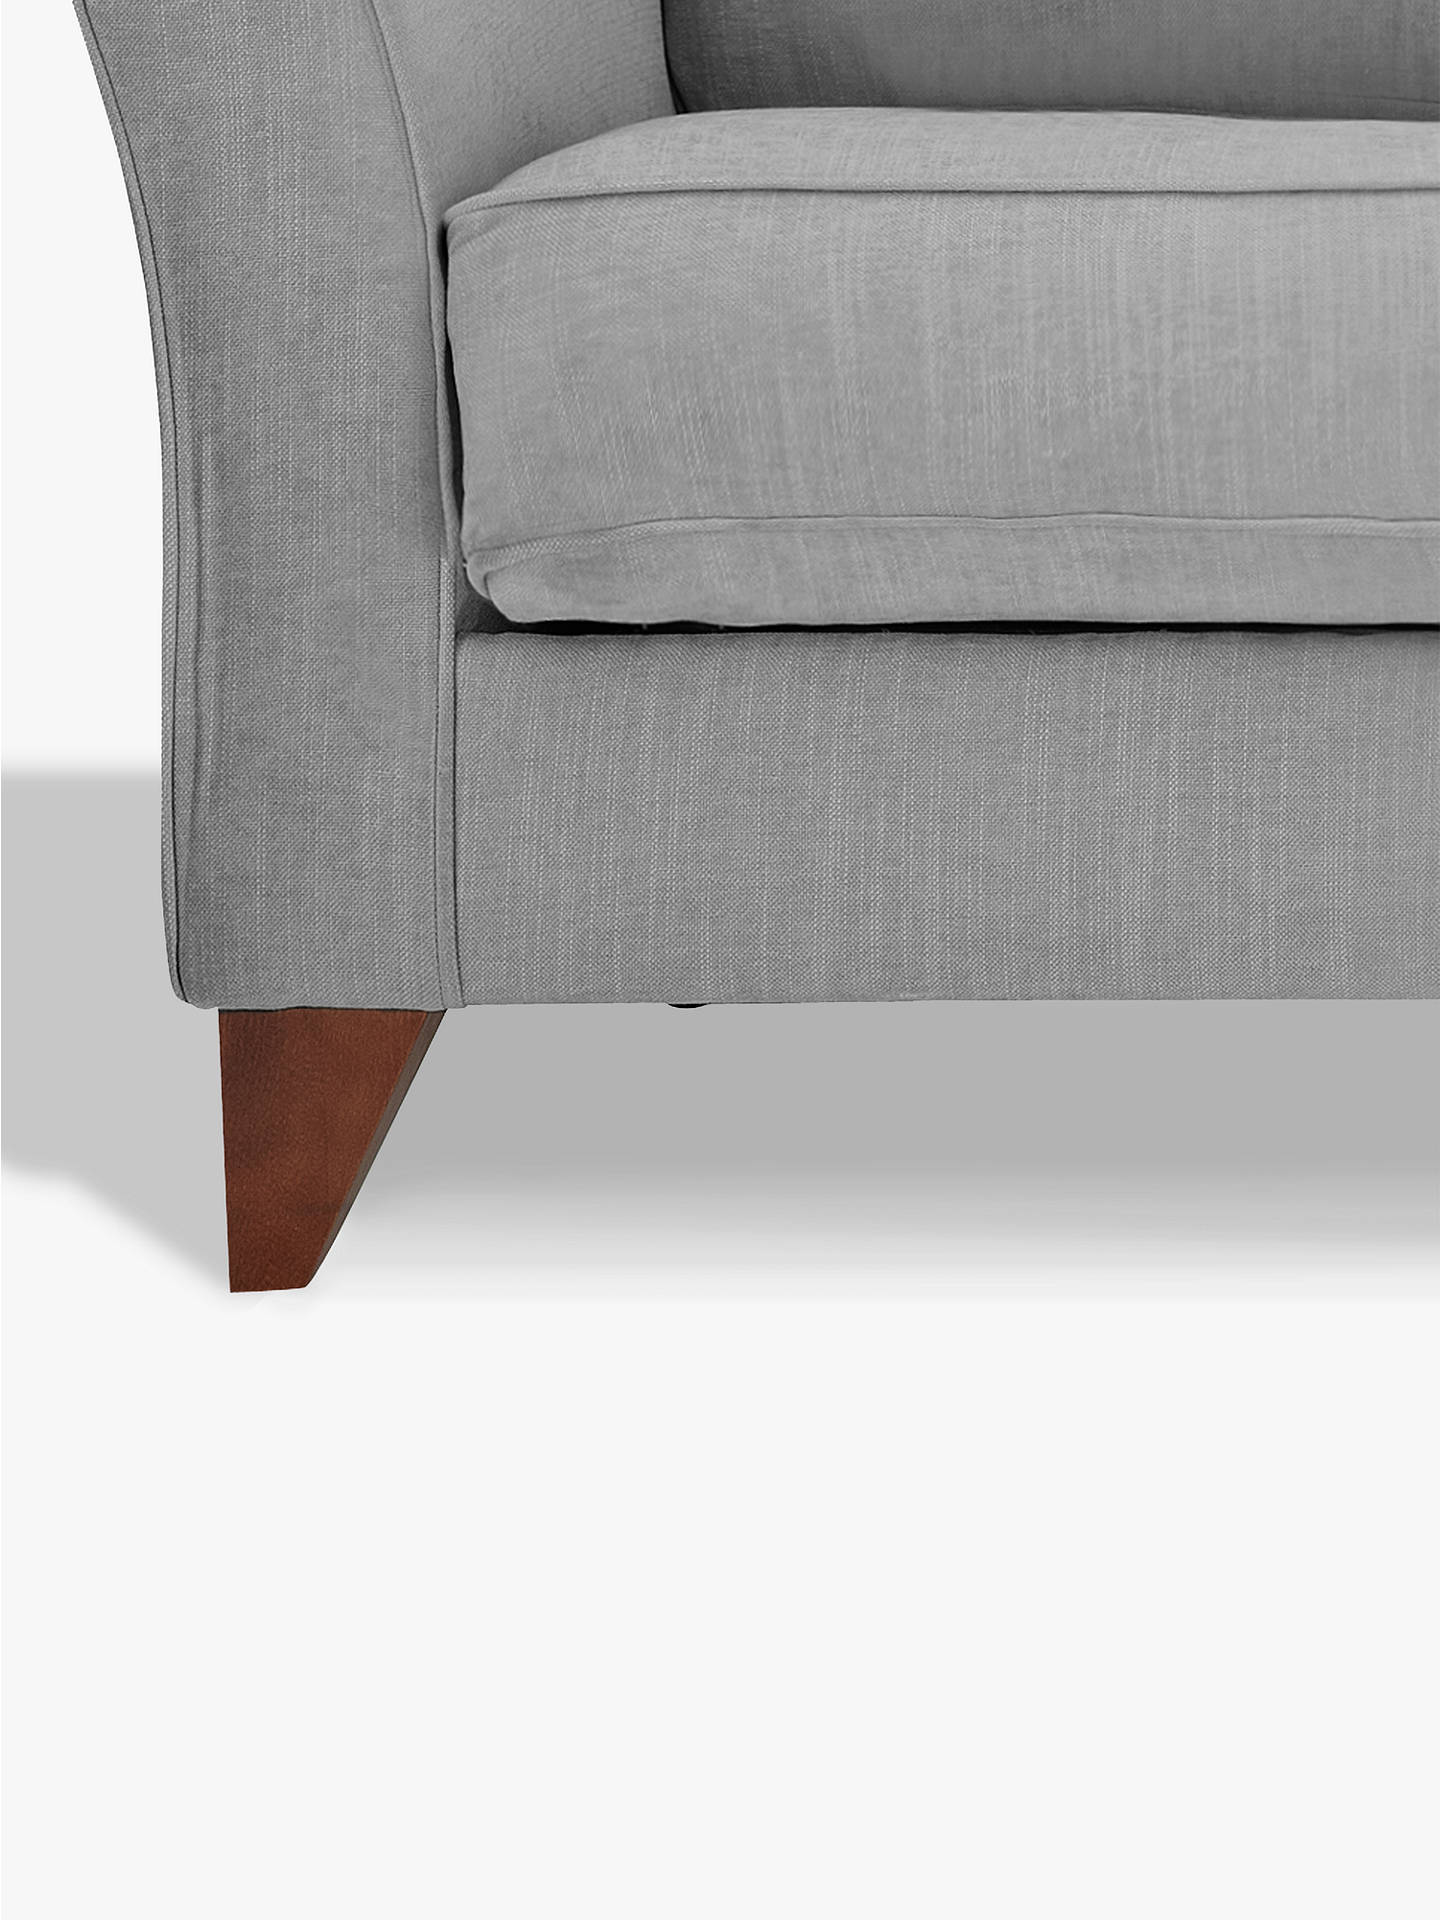 Remarkable John Lewis Partners Charlotte Small 2 Seater Sofa Theyellowbook Wood Chair Design Ideas Theyellowbookinfo